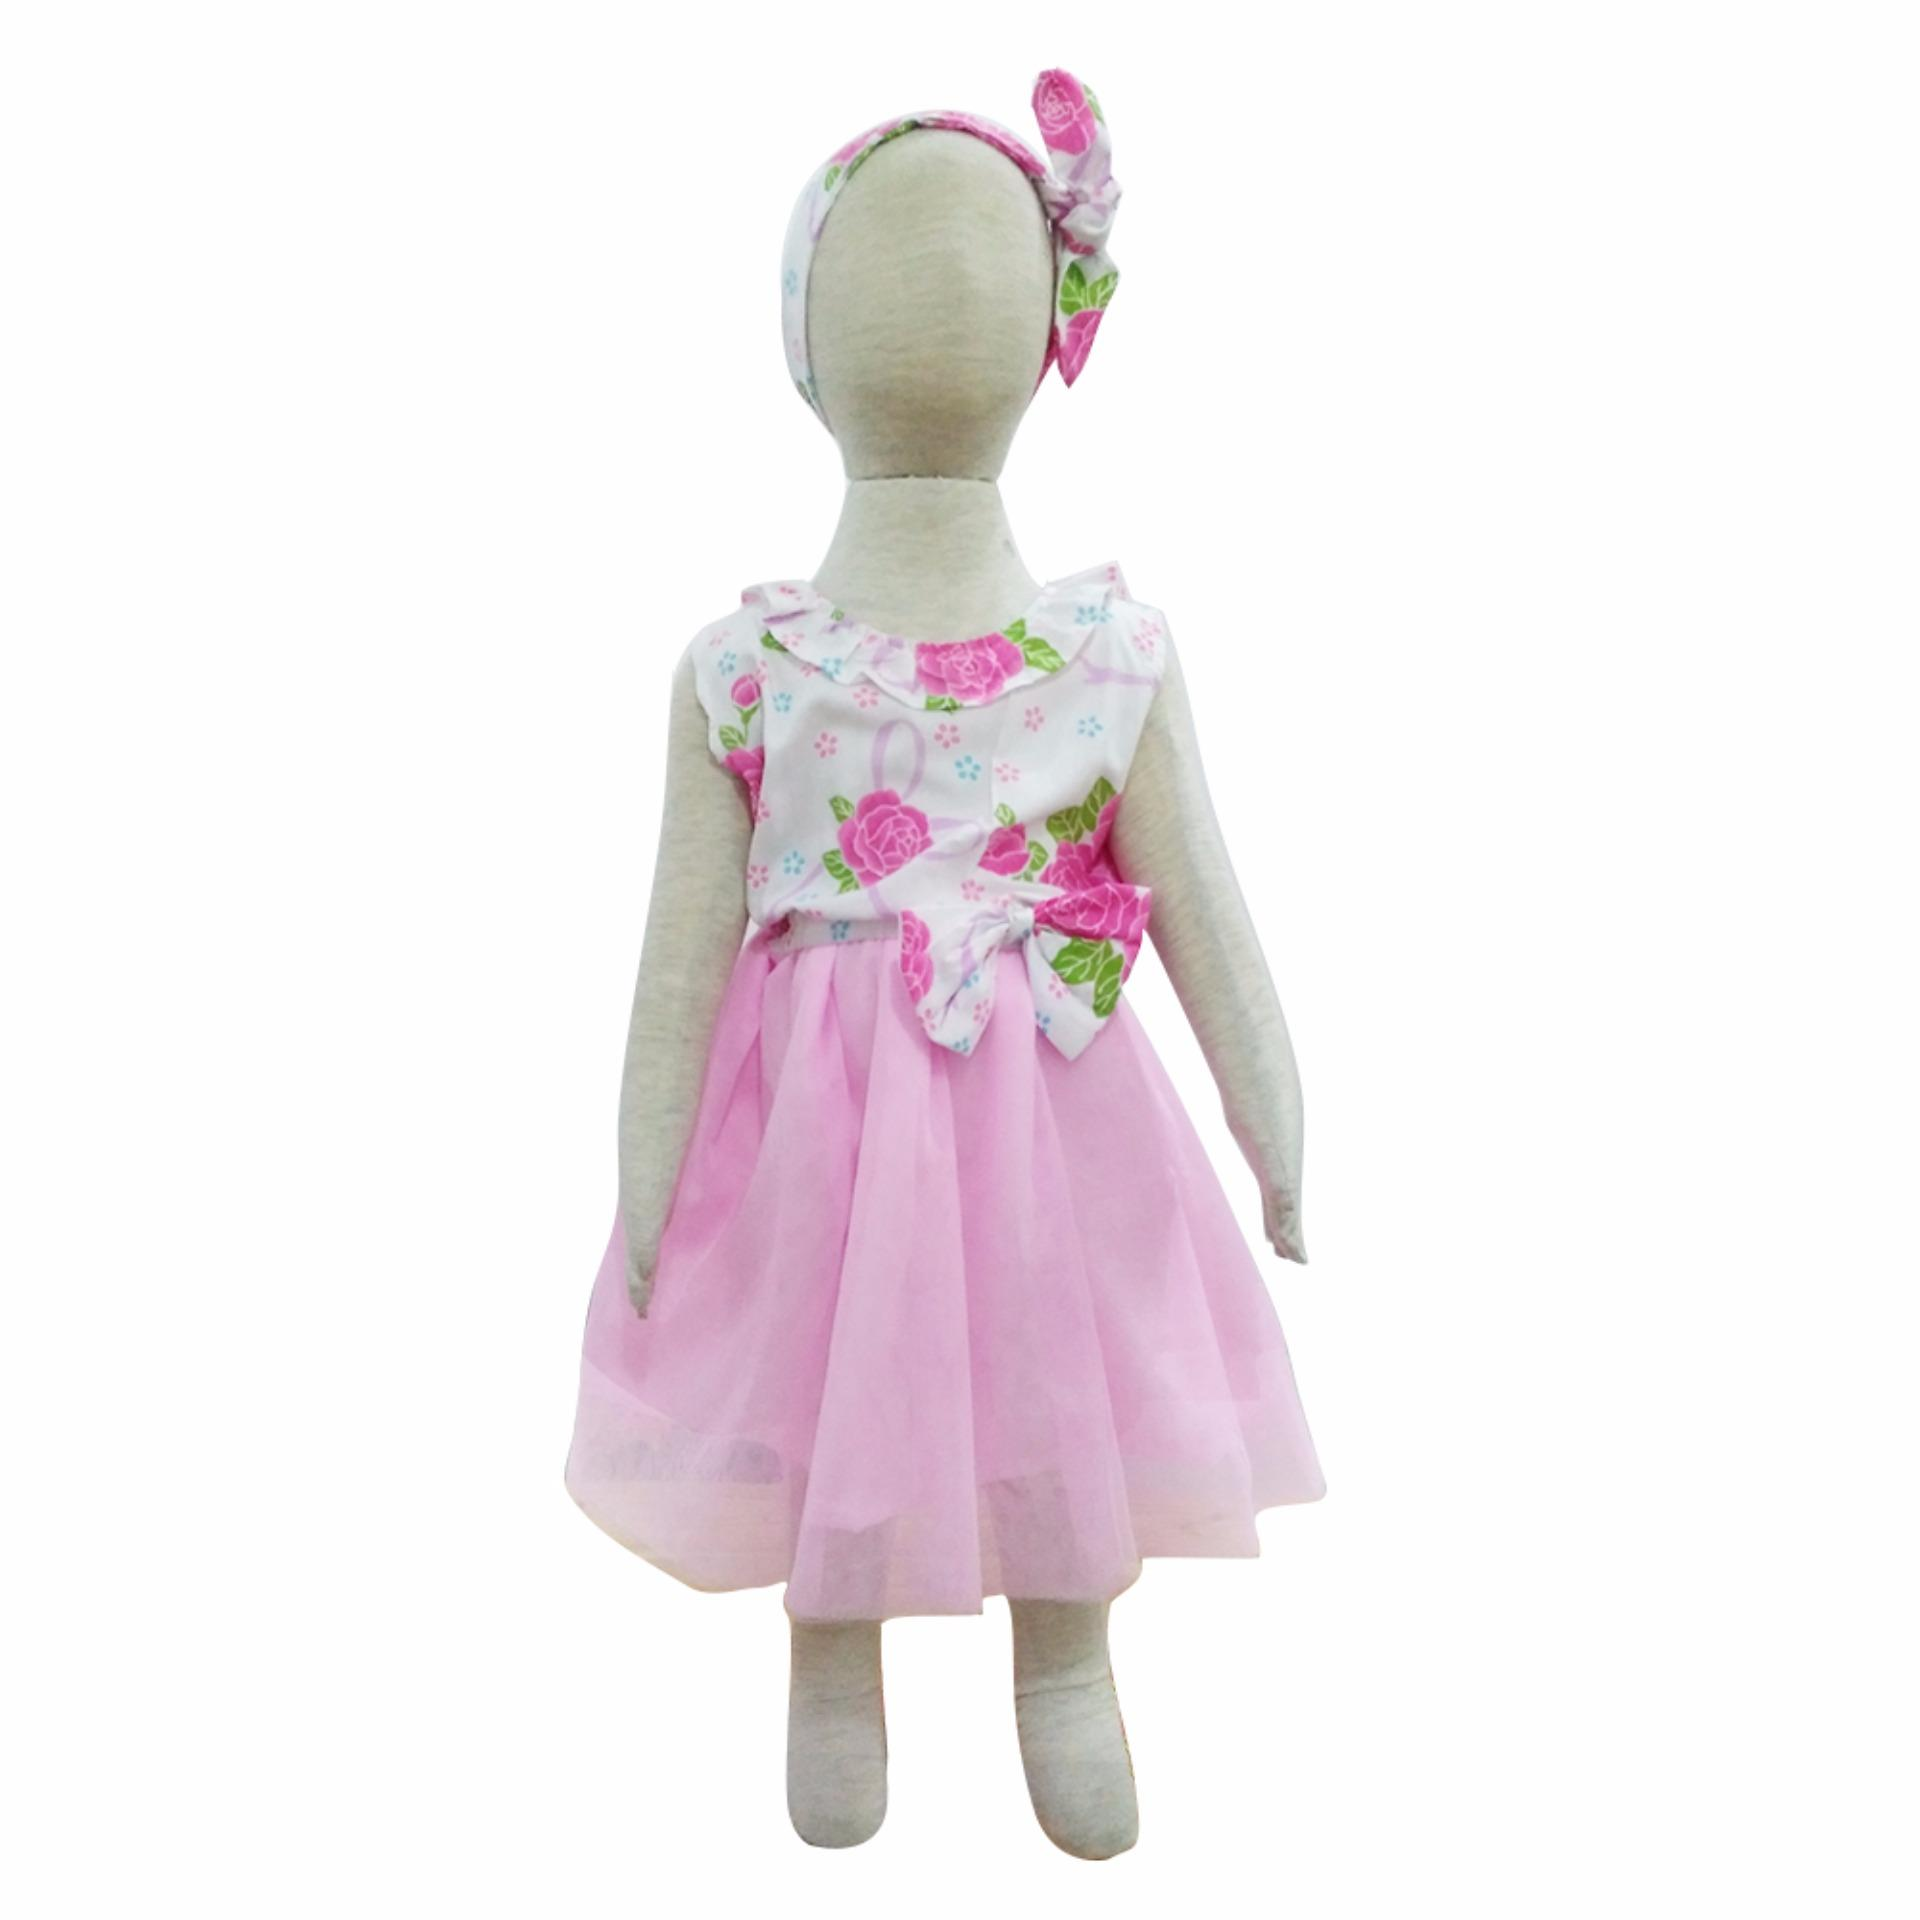 Grow Baju Gaun Pesta Anak Perempuan Tilla ( Grow Tilla Gown Dress Clothes Child Girl ) Multicolor